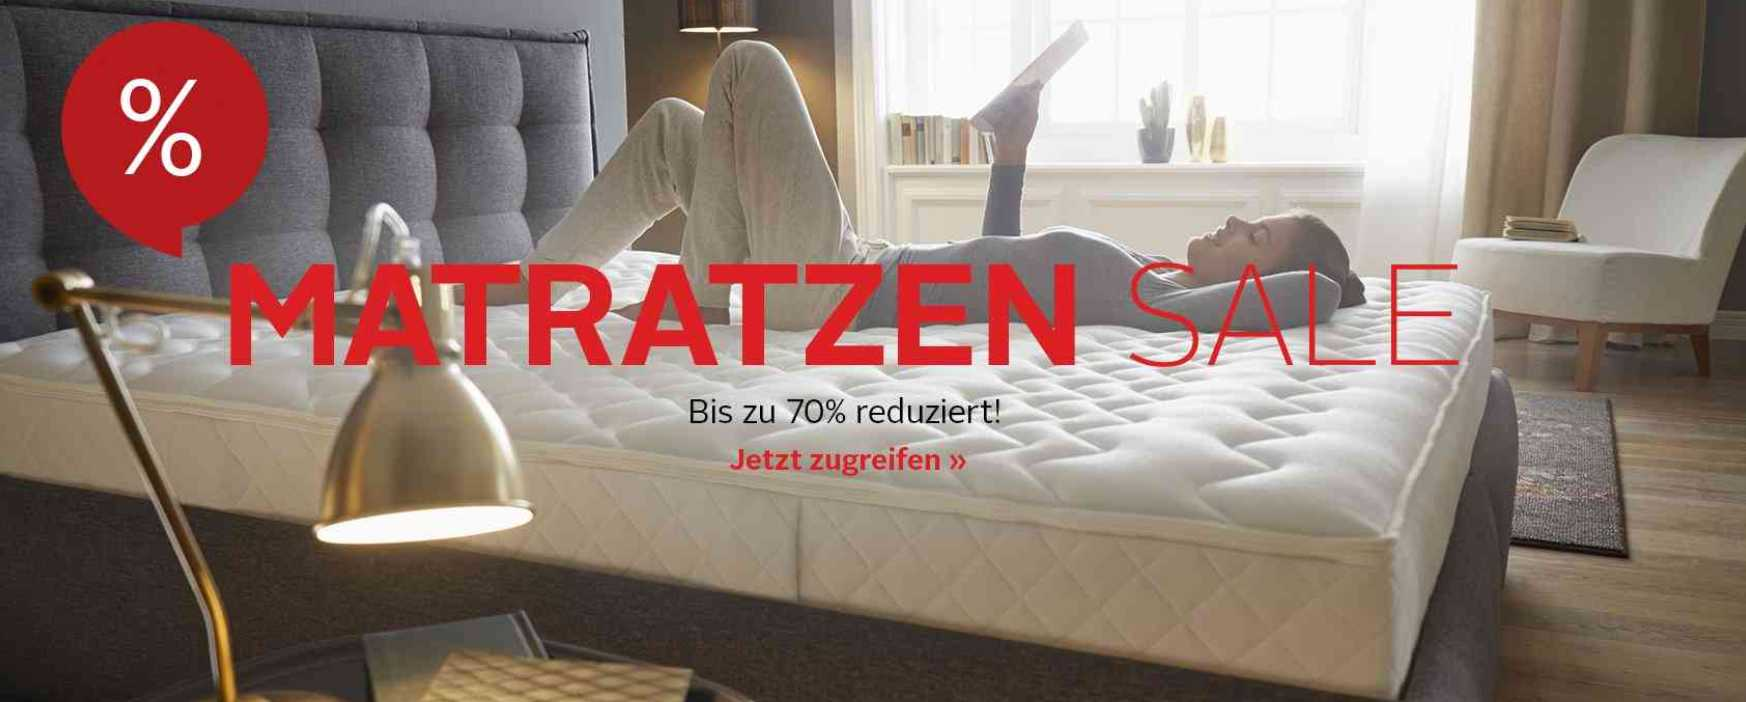 otto matratzen bis zu 70 reduziert. Black Bedroom Furniture Sets. Home Design Ideas